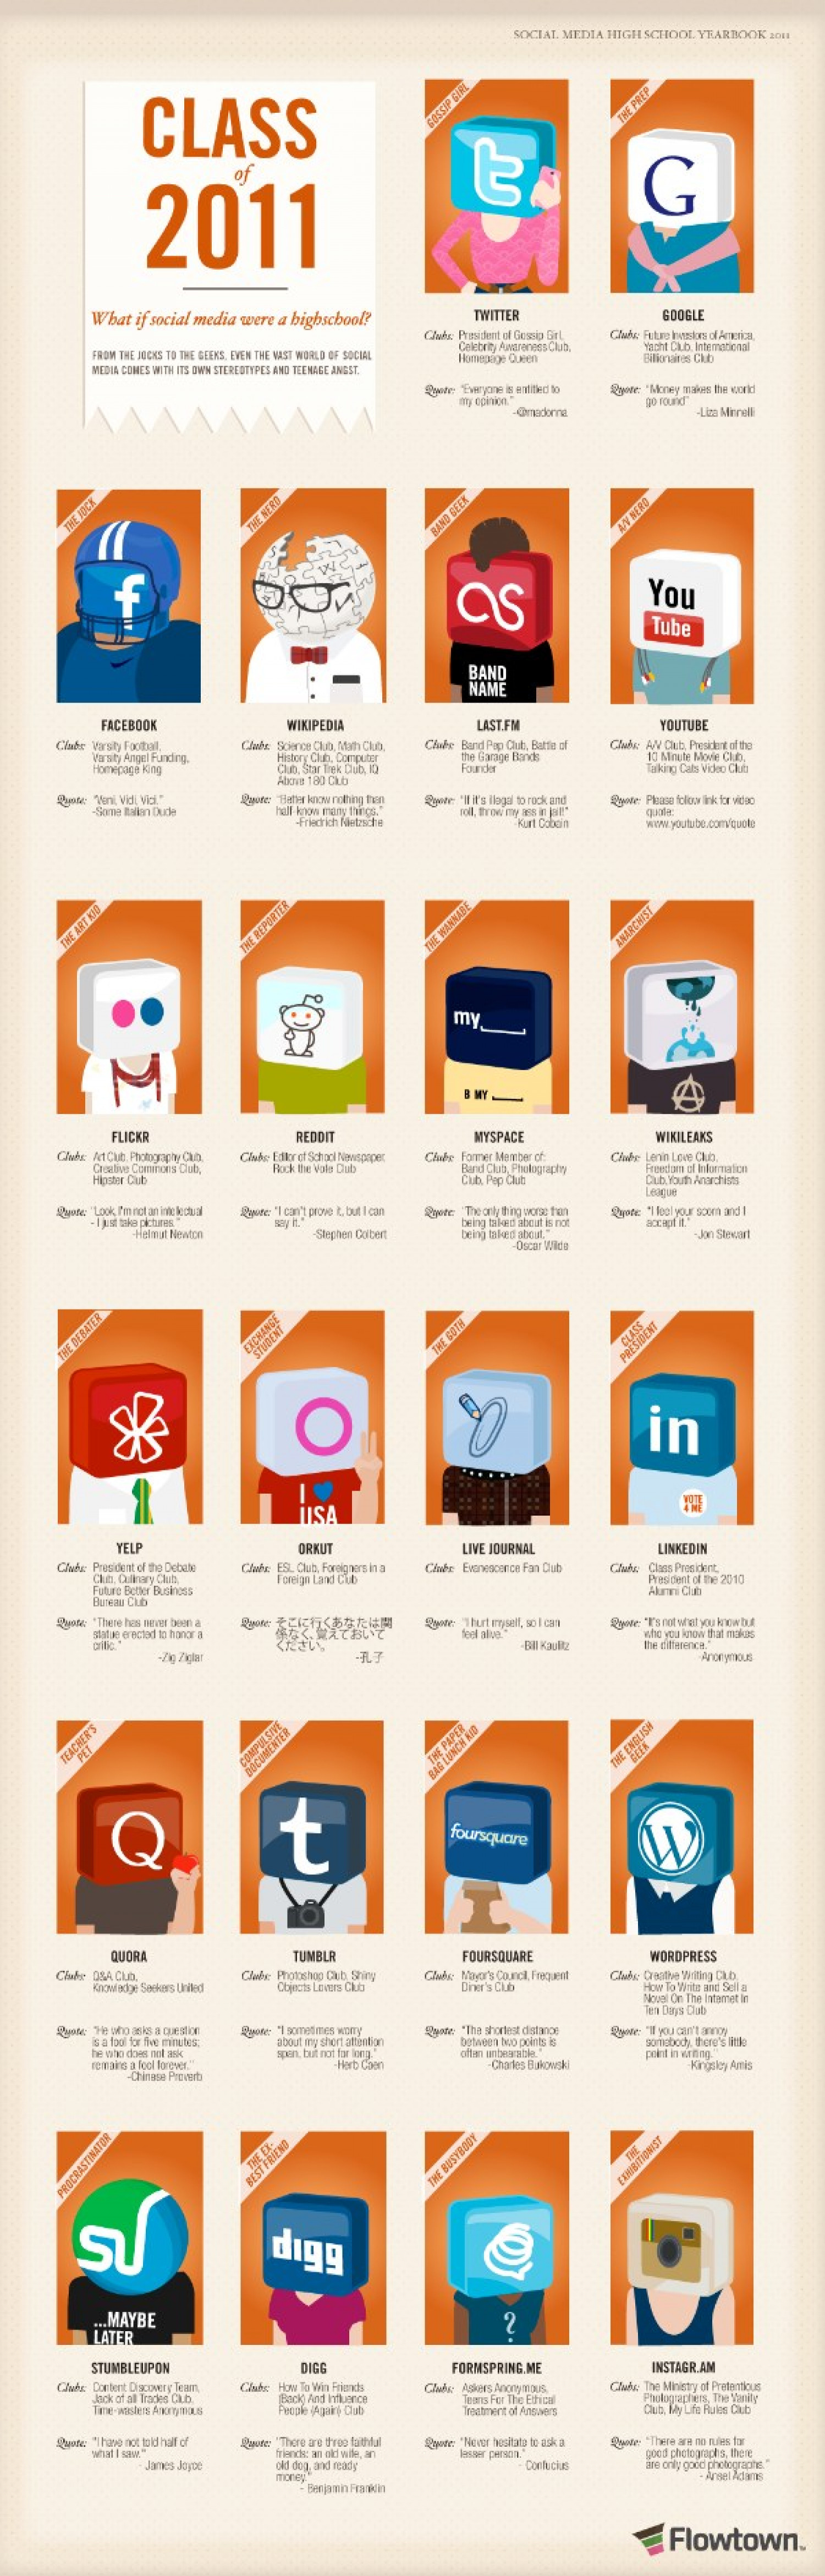 Class Of 2011: If Social Media Were a High School   Infographic